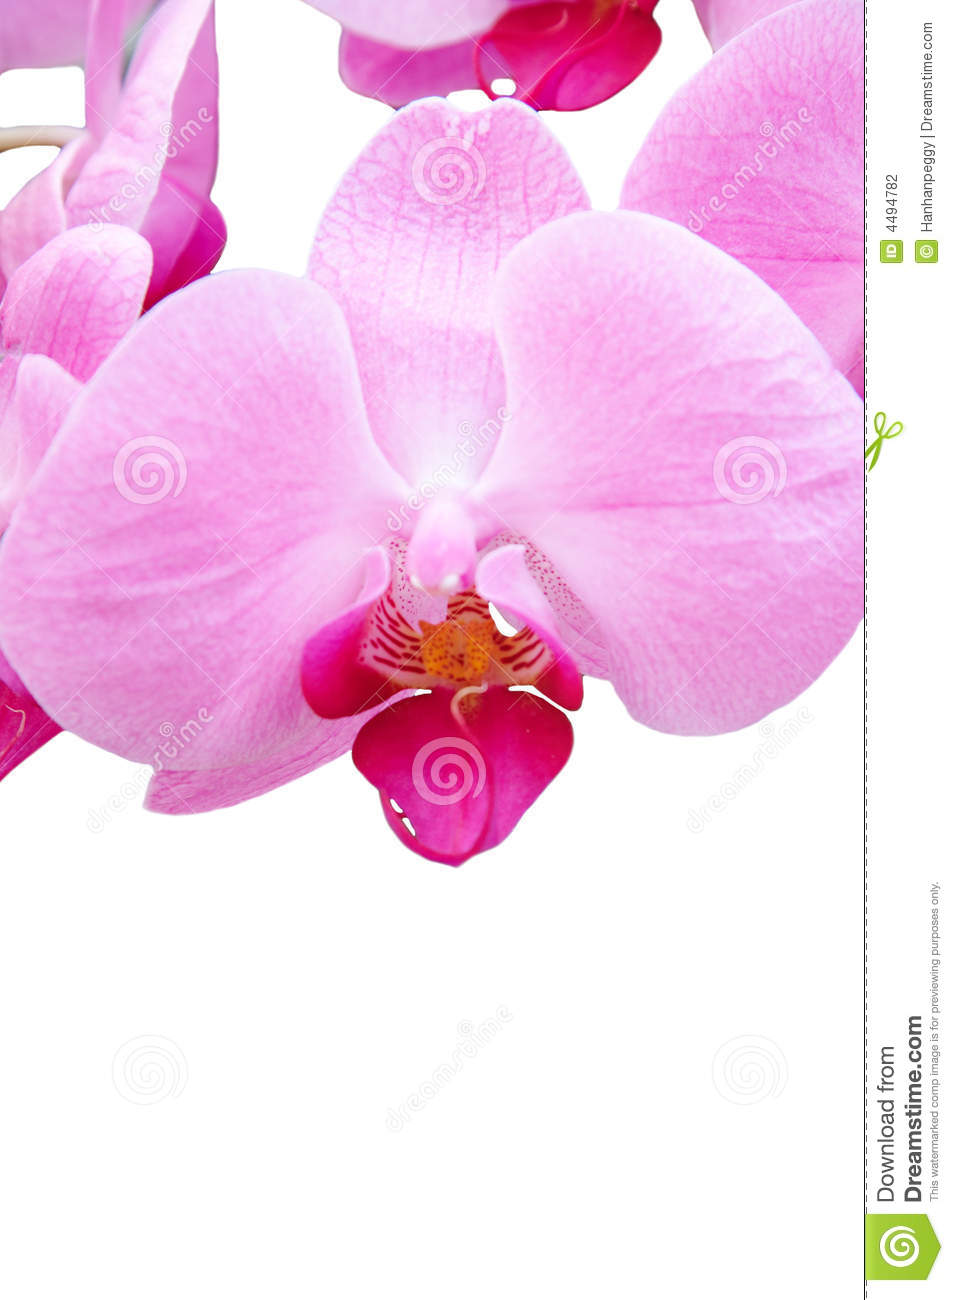 pink orchids close up - photo #14